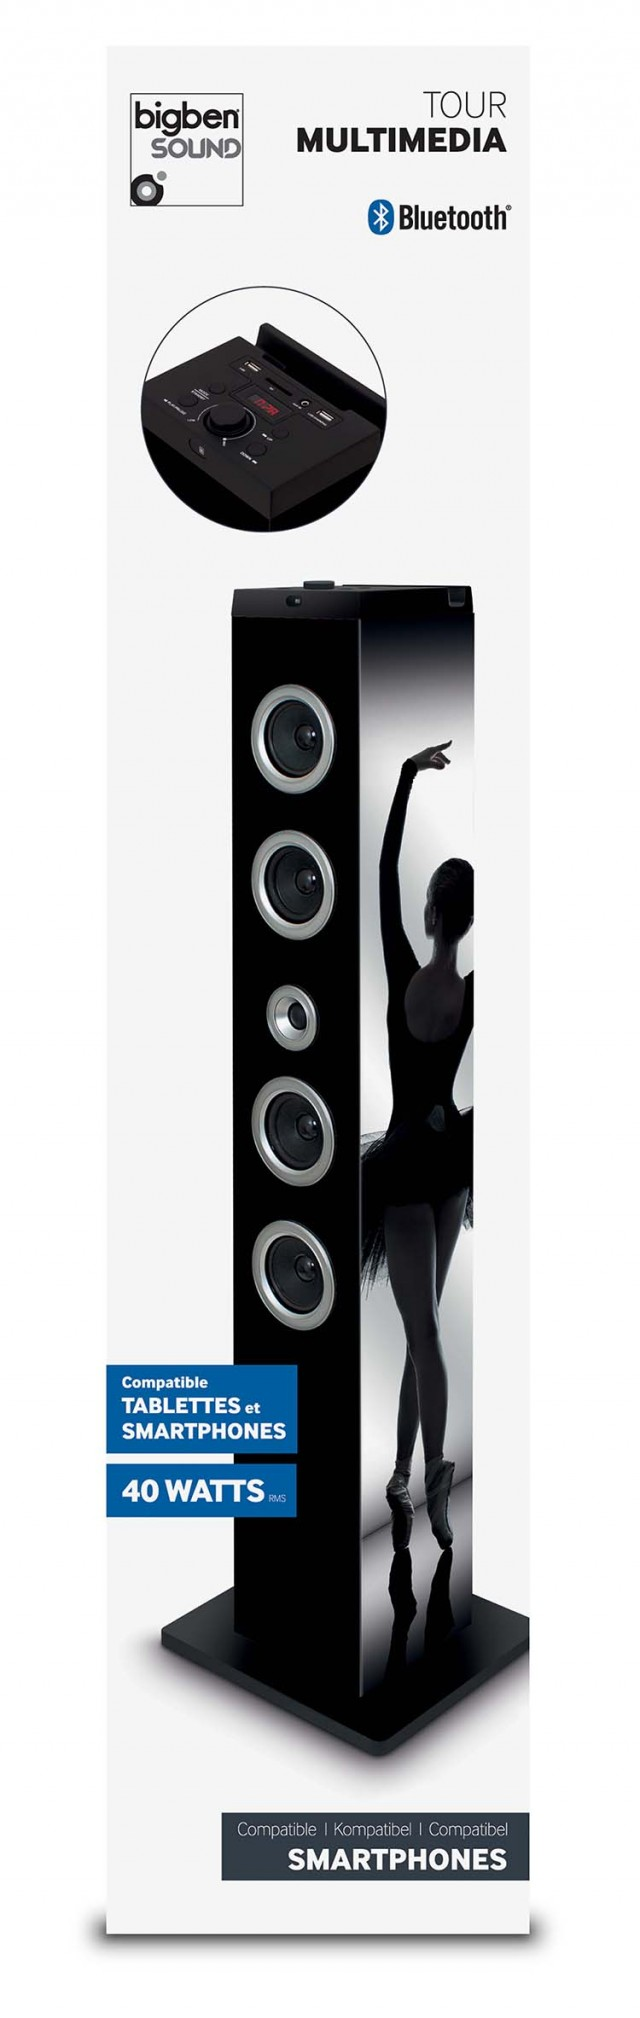 Multimedia Tower Ballerina – Image   #1